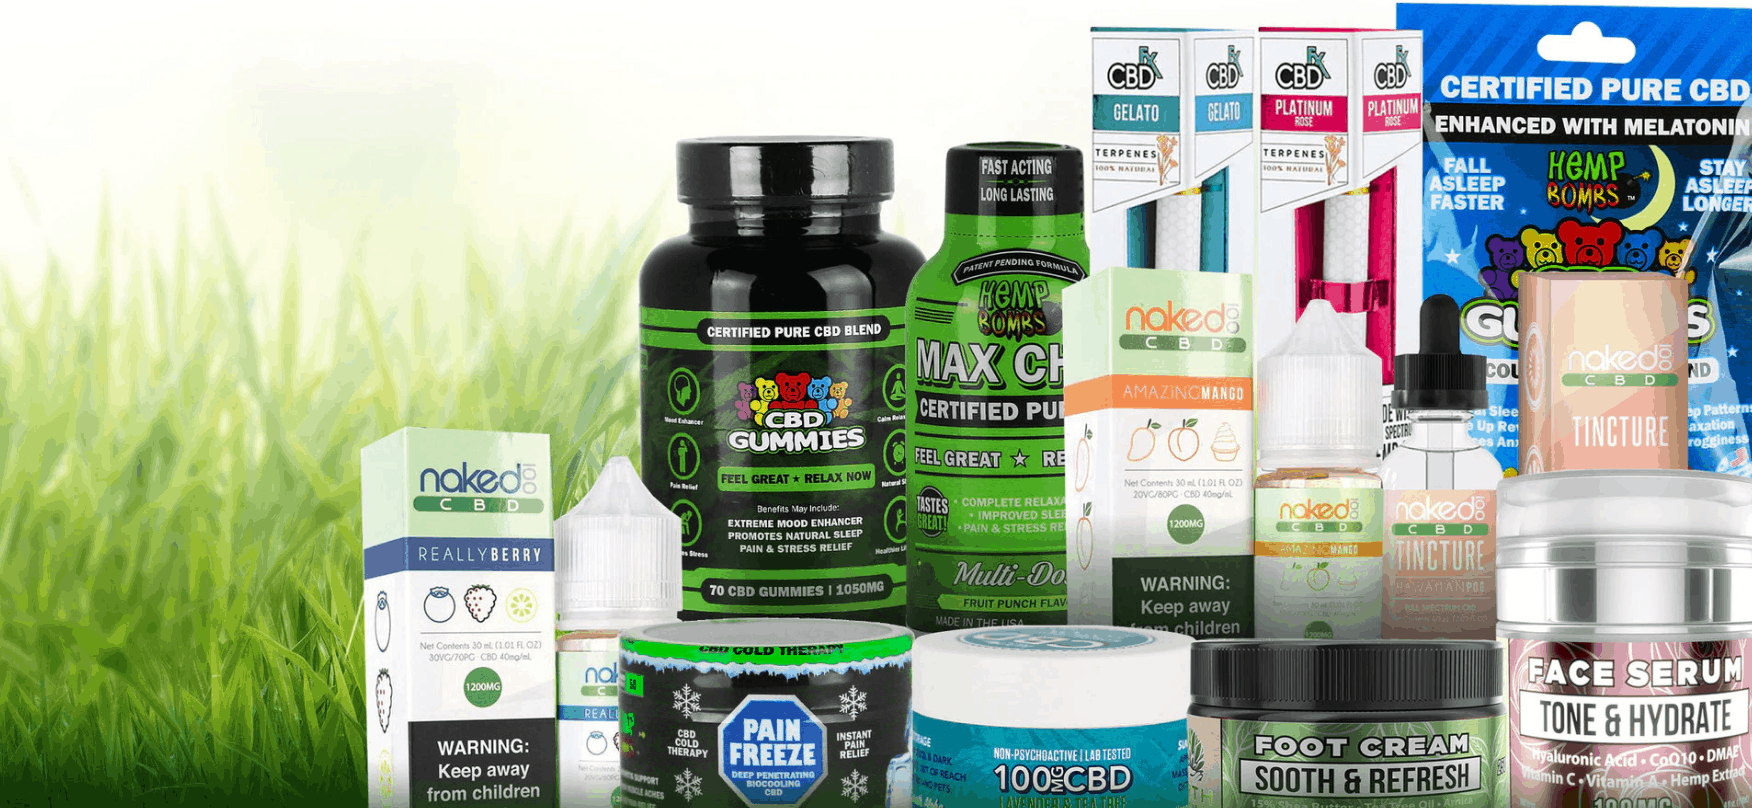 The CBD Site Coupon Code Products